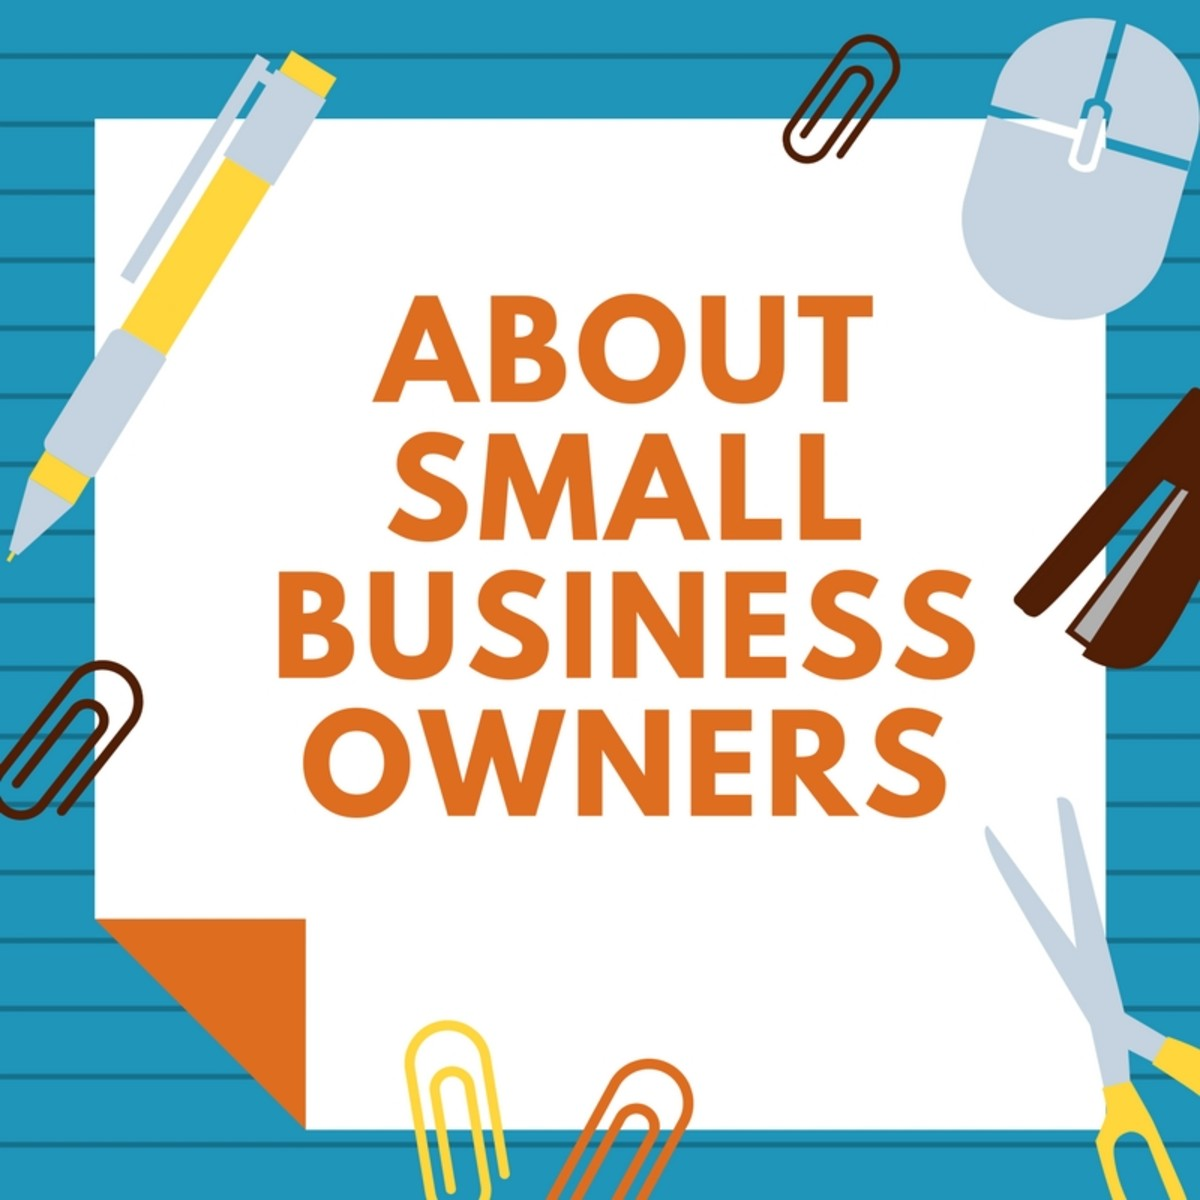 About Small Business Owners